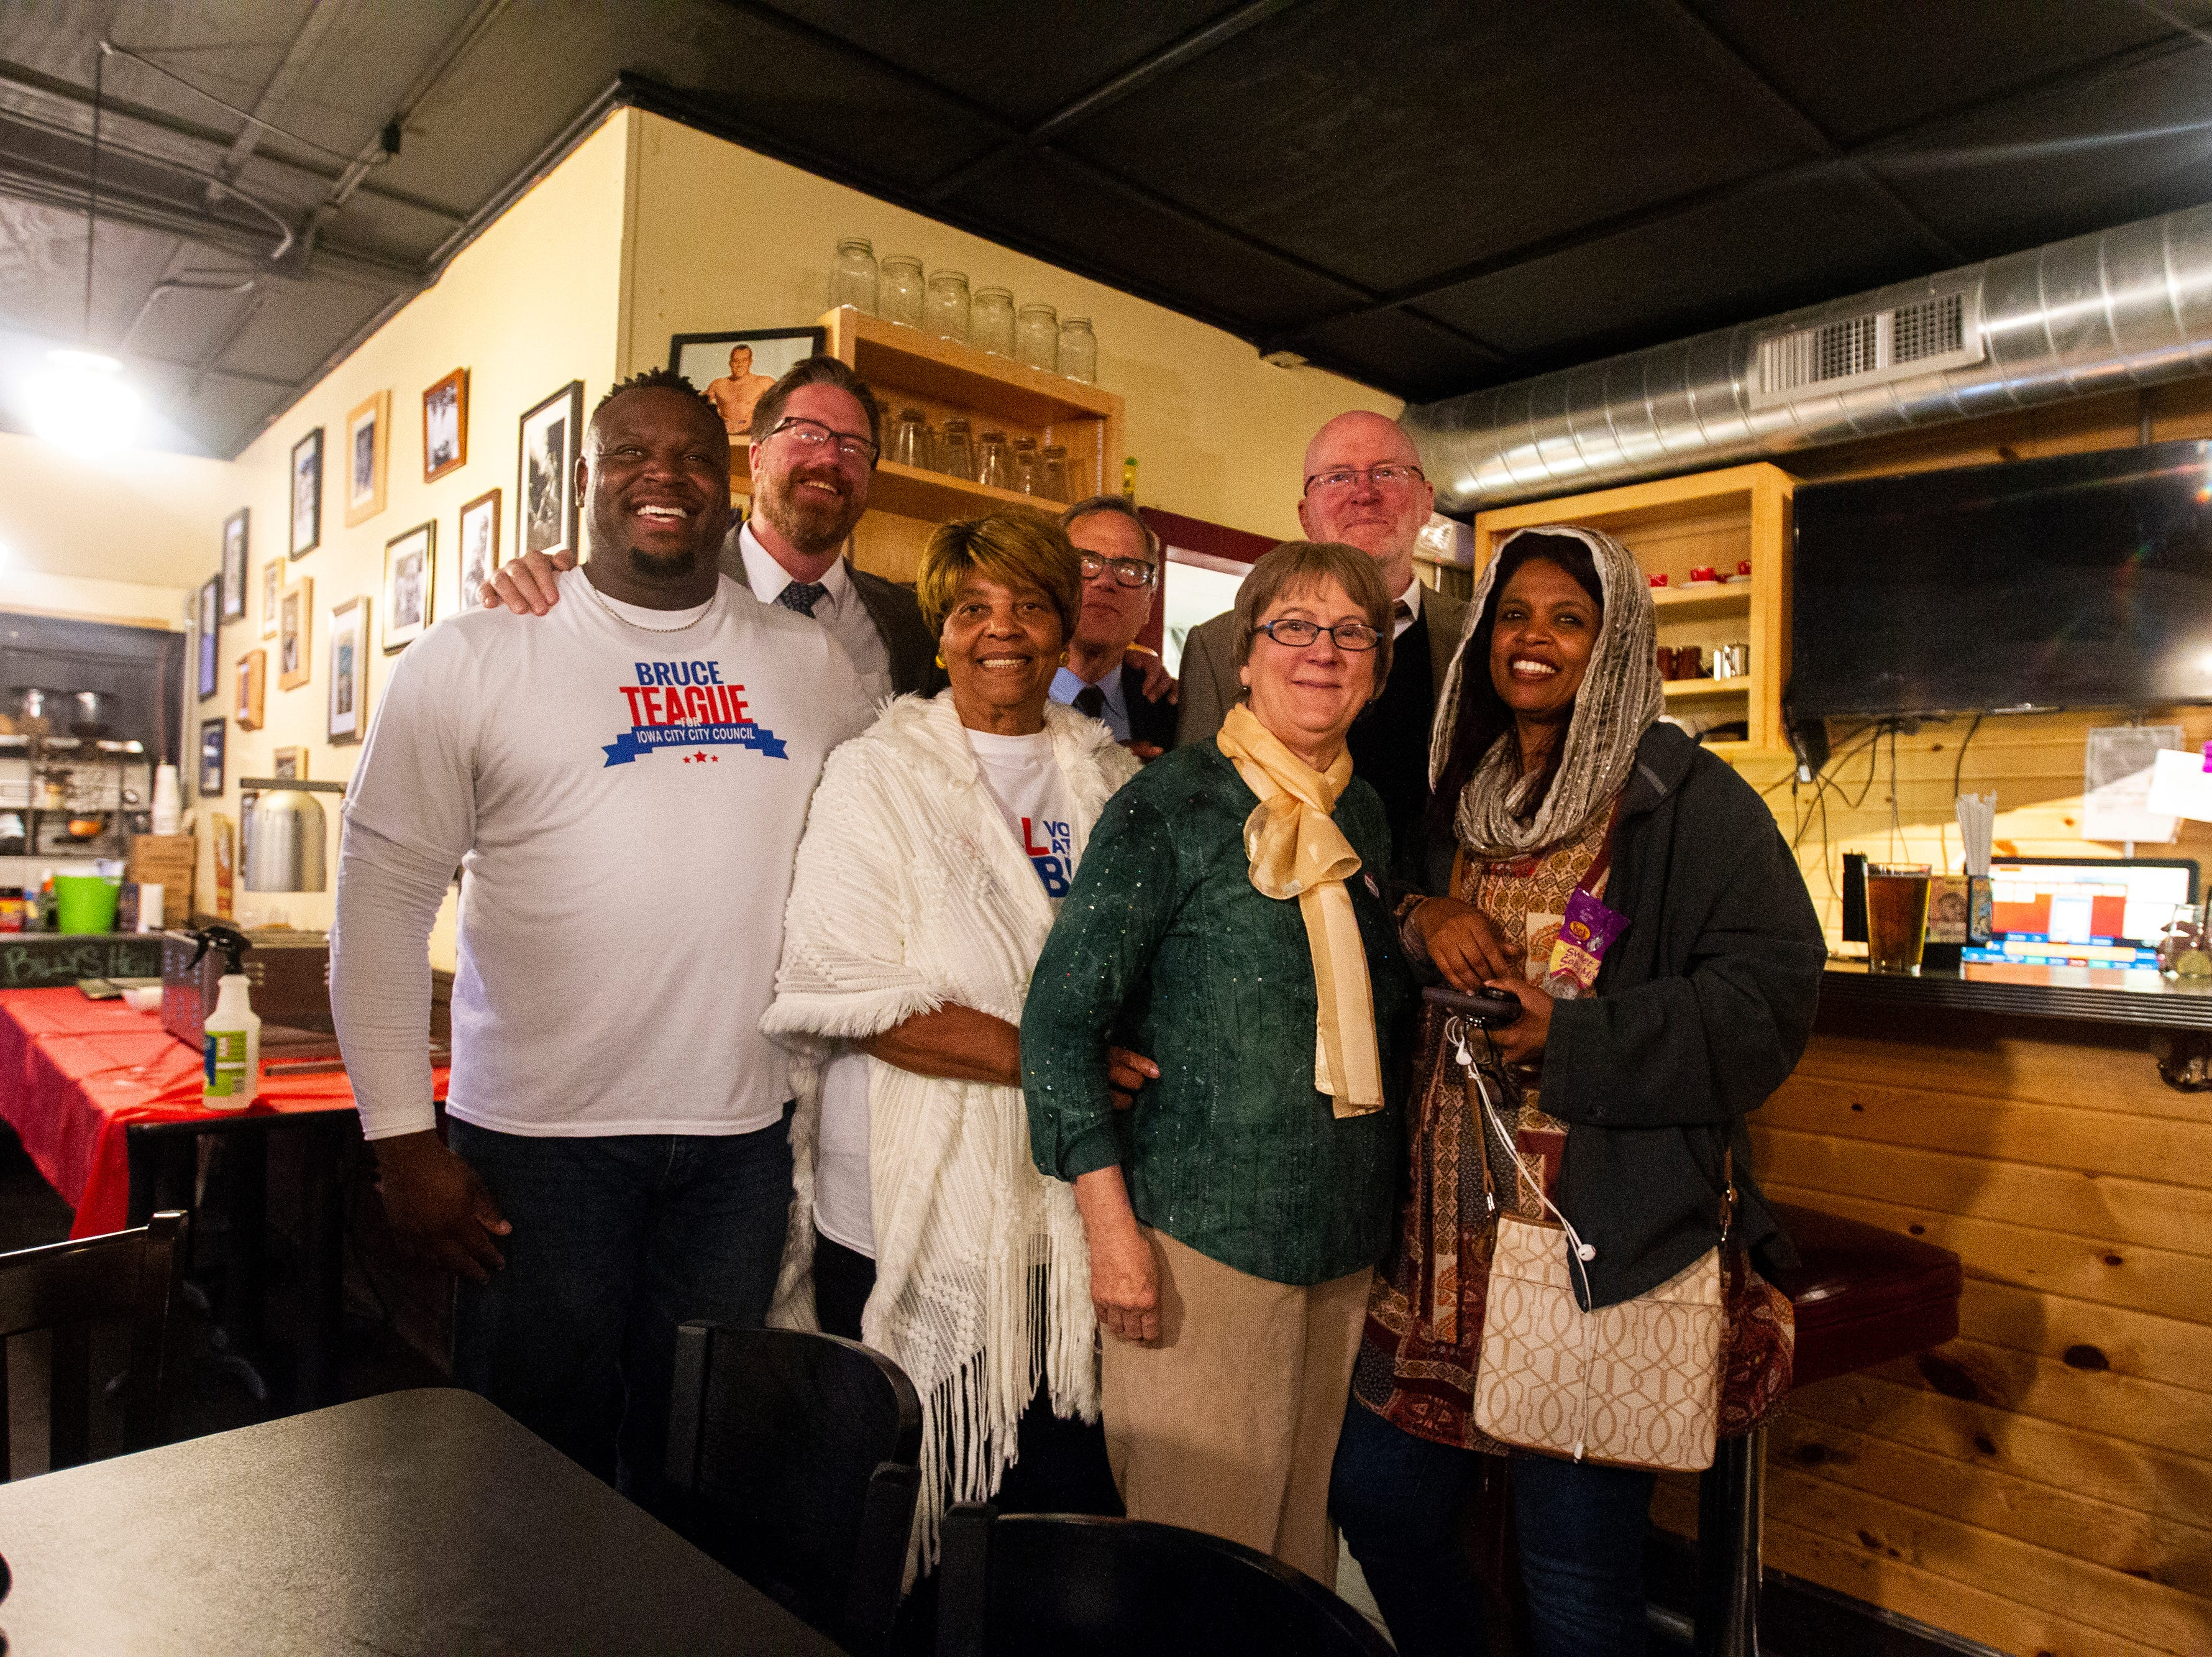 Bruce Teague poses for photos with Rockne Cole, Mary Teague, John Thomas, Pauline Taylor, Jim Throgmorton and Mazahir Salih on Tuesday, Oct. 2, 2018, at Billy's High Hat Diner on Iowa Avenue in Iowa City.